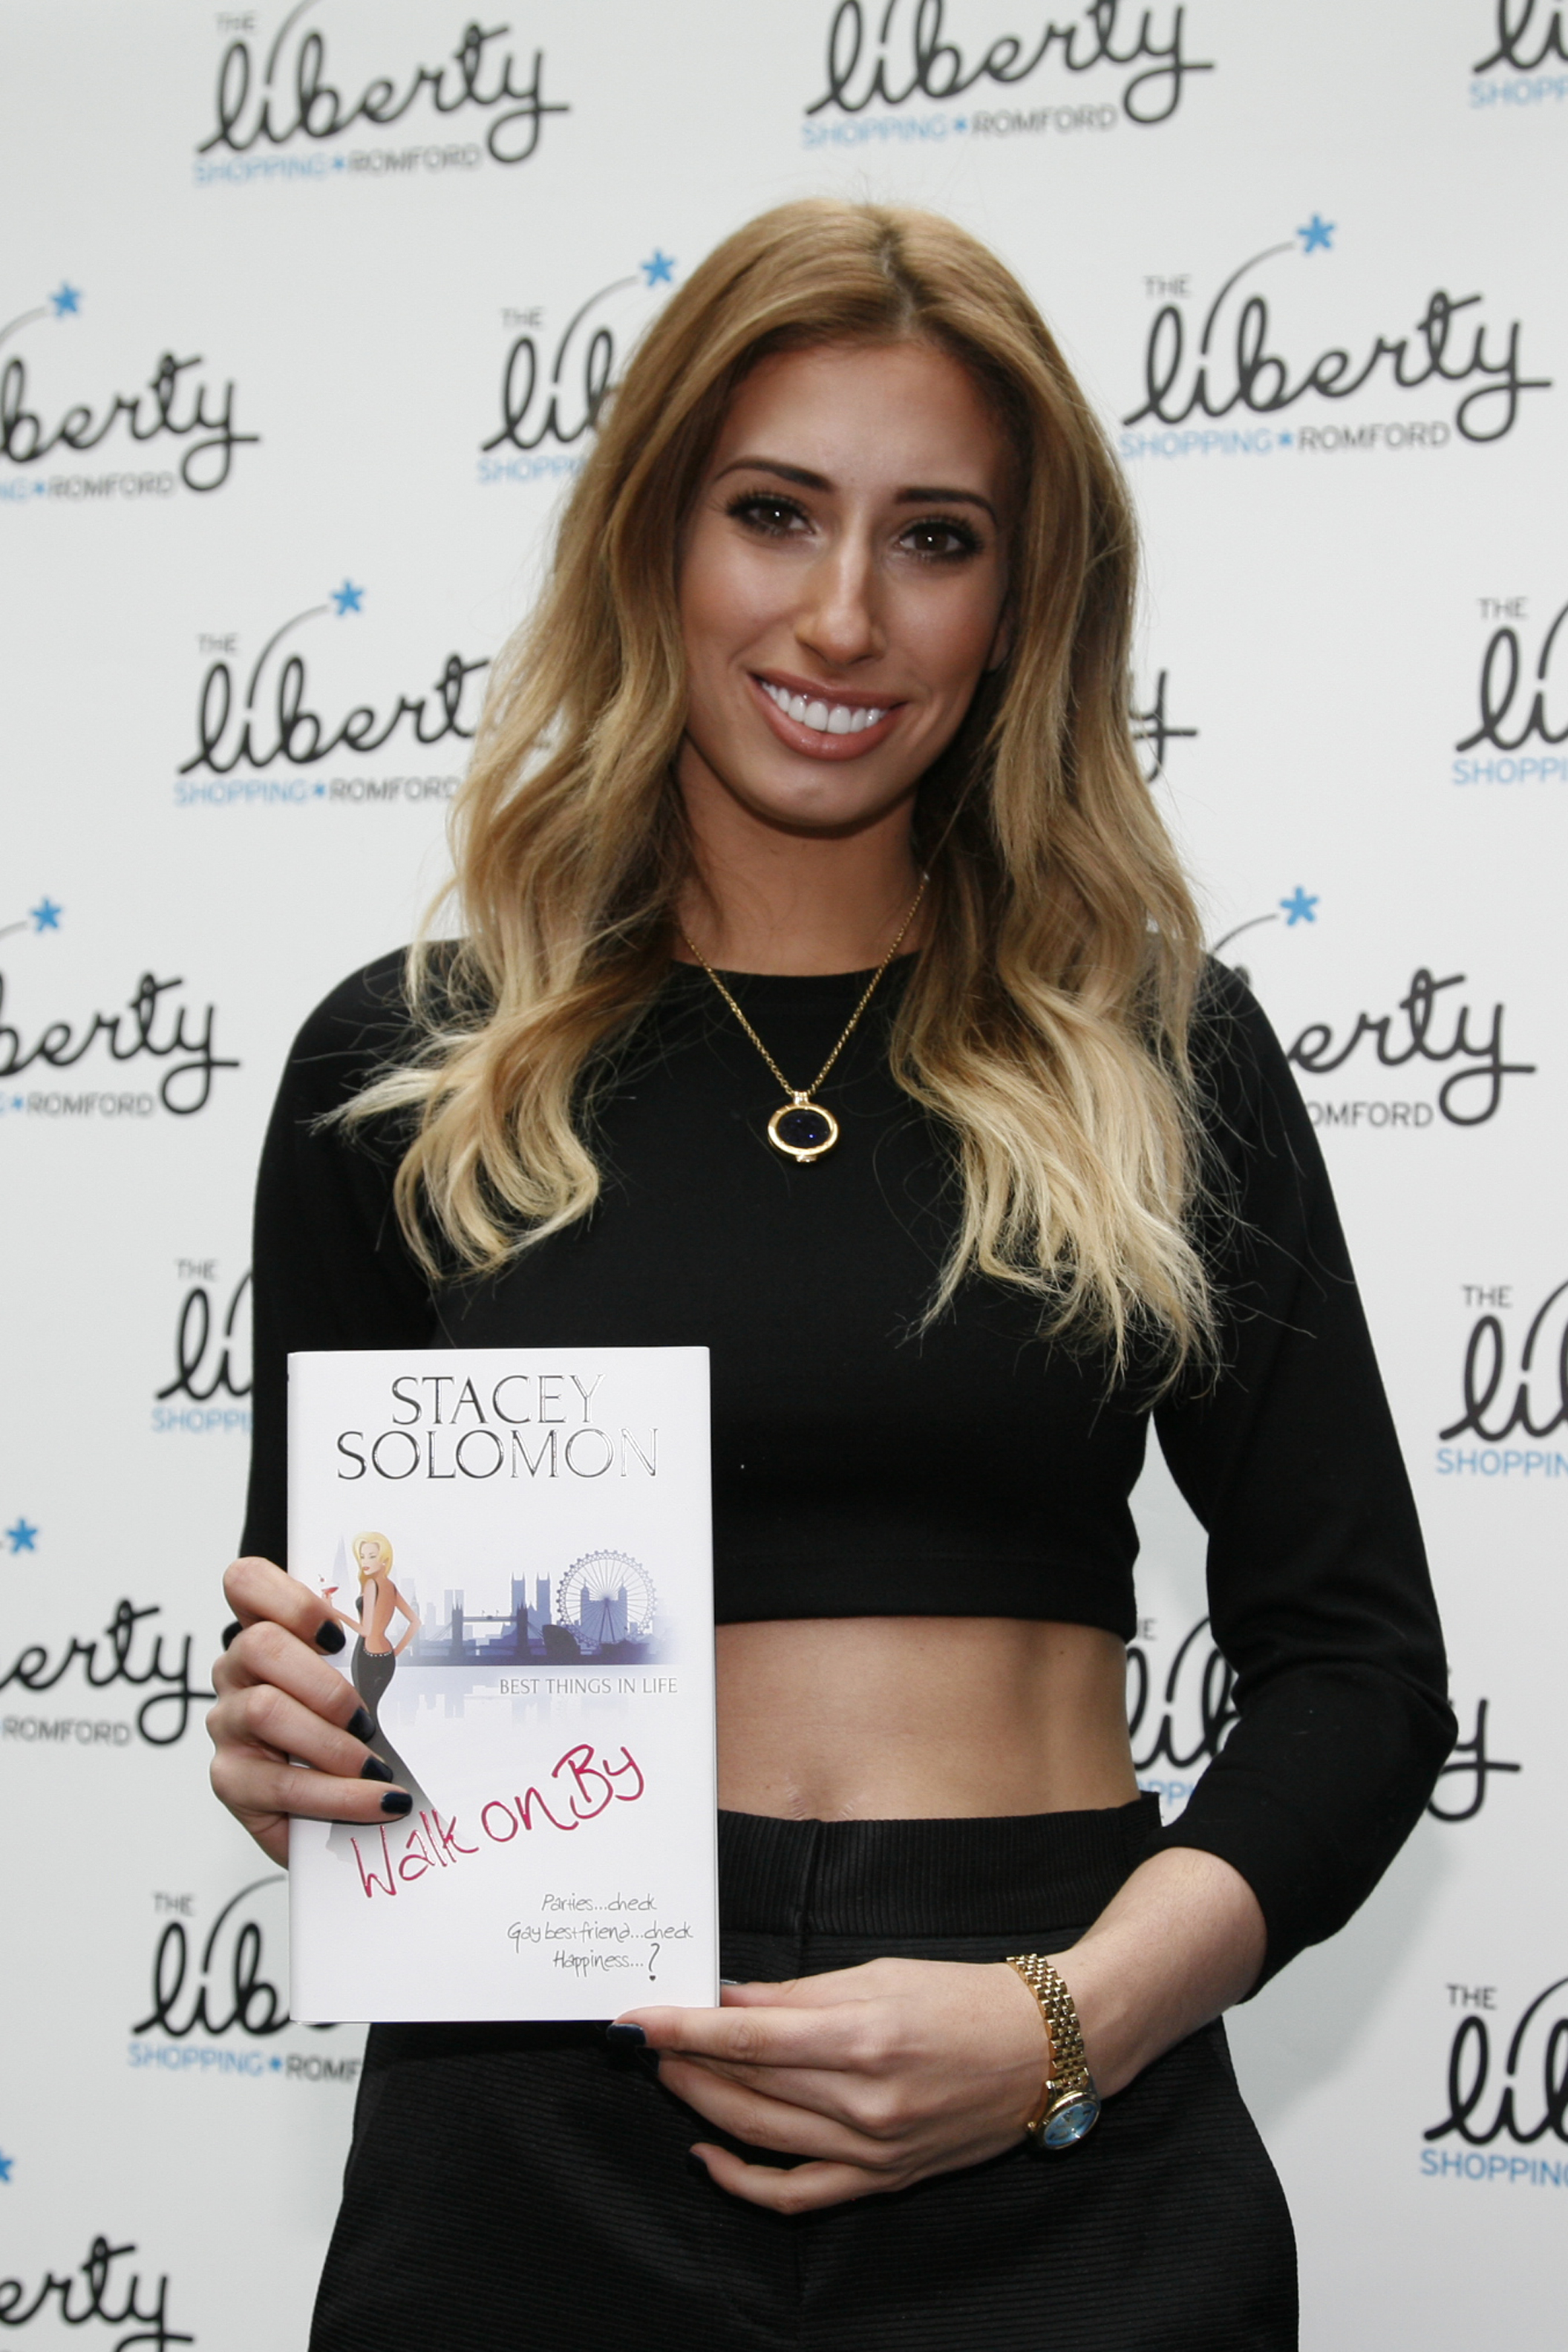 Stacey Solomon with her book, Walk on By (Copyright S Rowse)